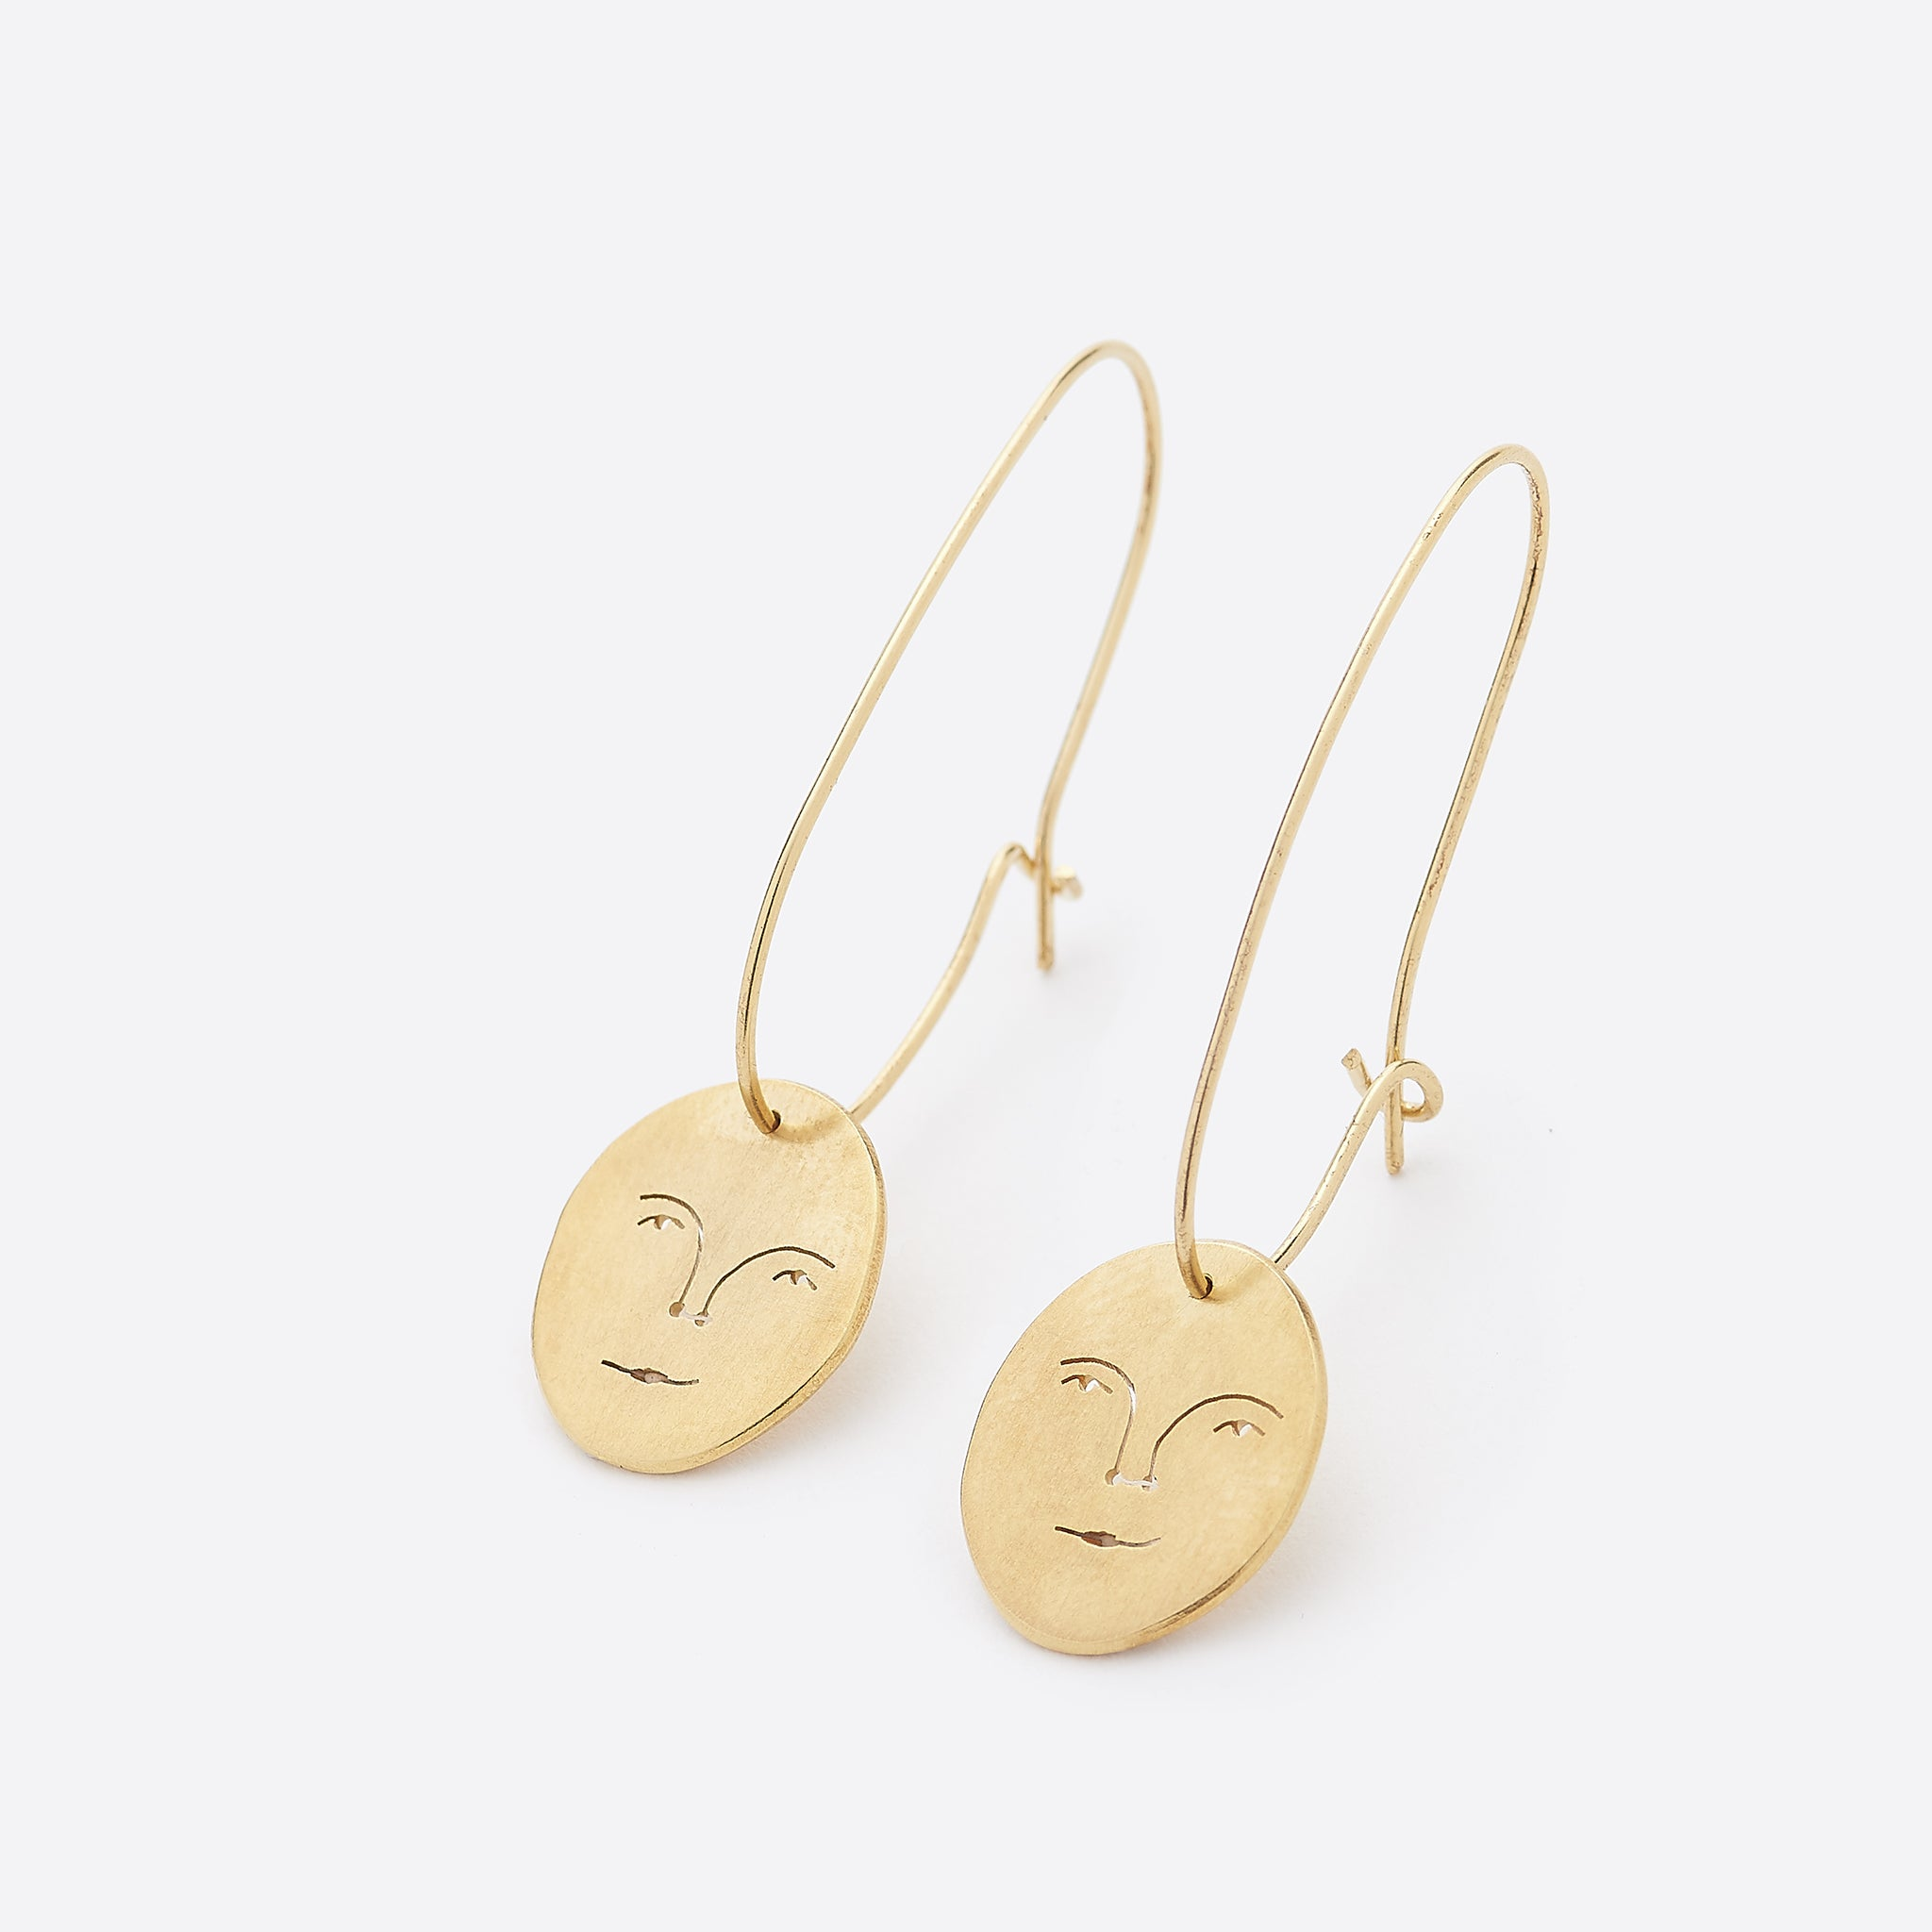 Polly Collins Sun Face Earrings in Gold